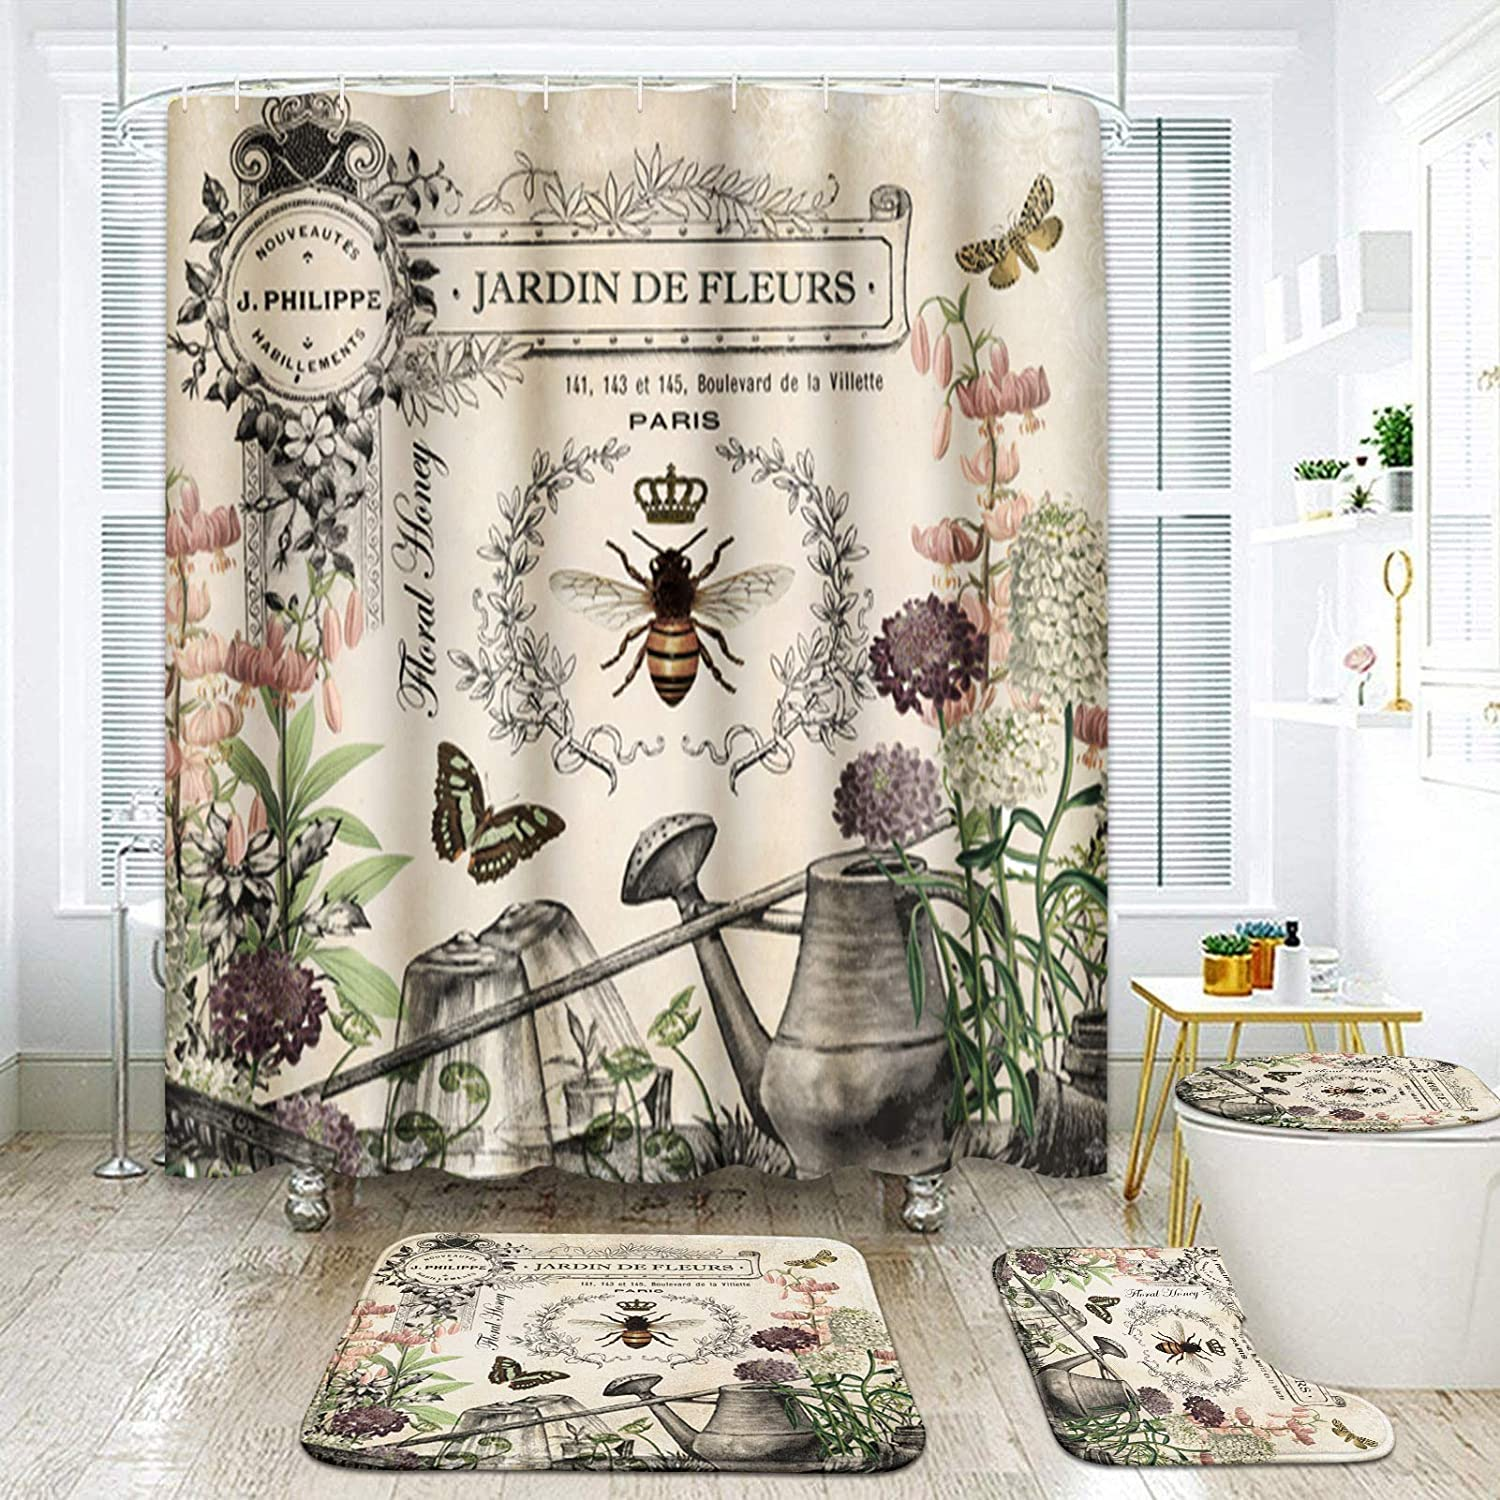 ArtSocket 4 Pcs Shower Curtain Set Plant bee Butterfly Stamp Retro Beautiful Floral with Non-Slip Rugs Toilet Lid Cover and Bath Mat Bathroom Decor Set 72